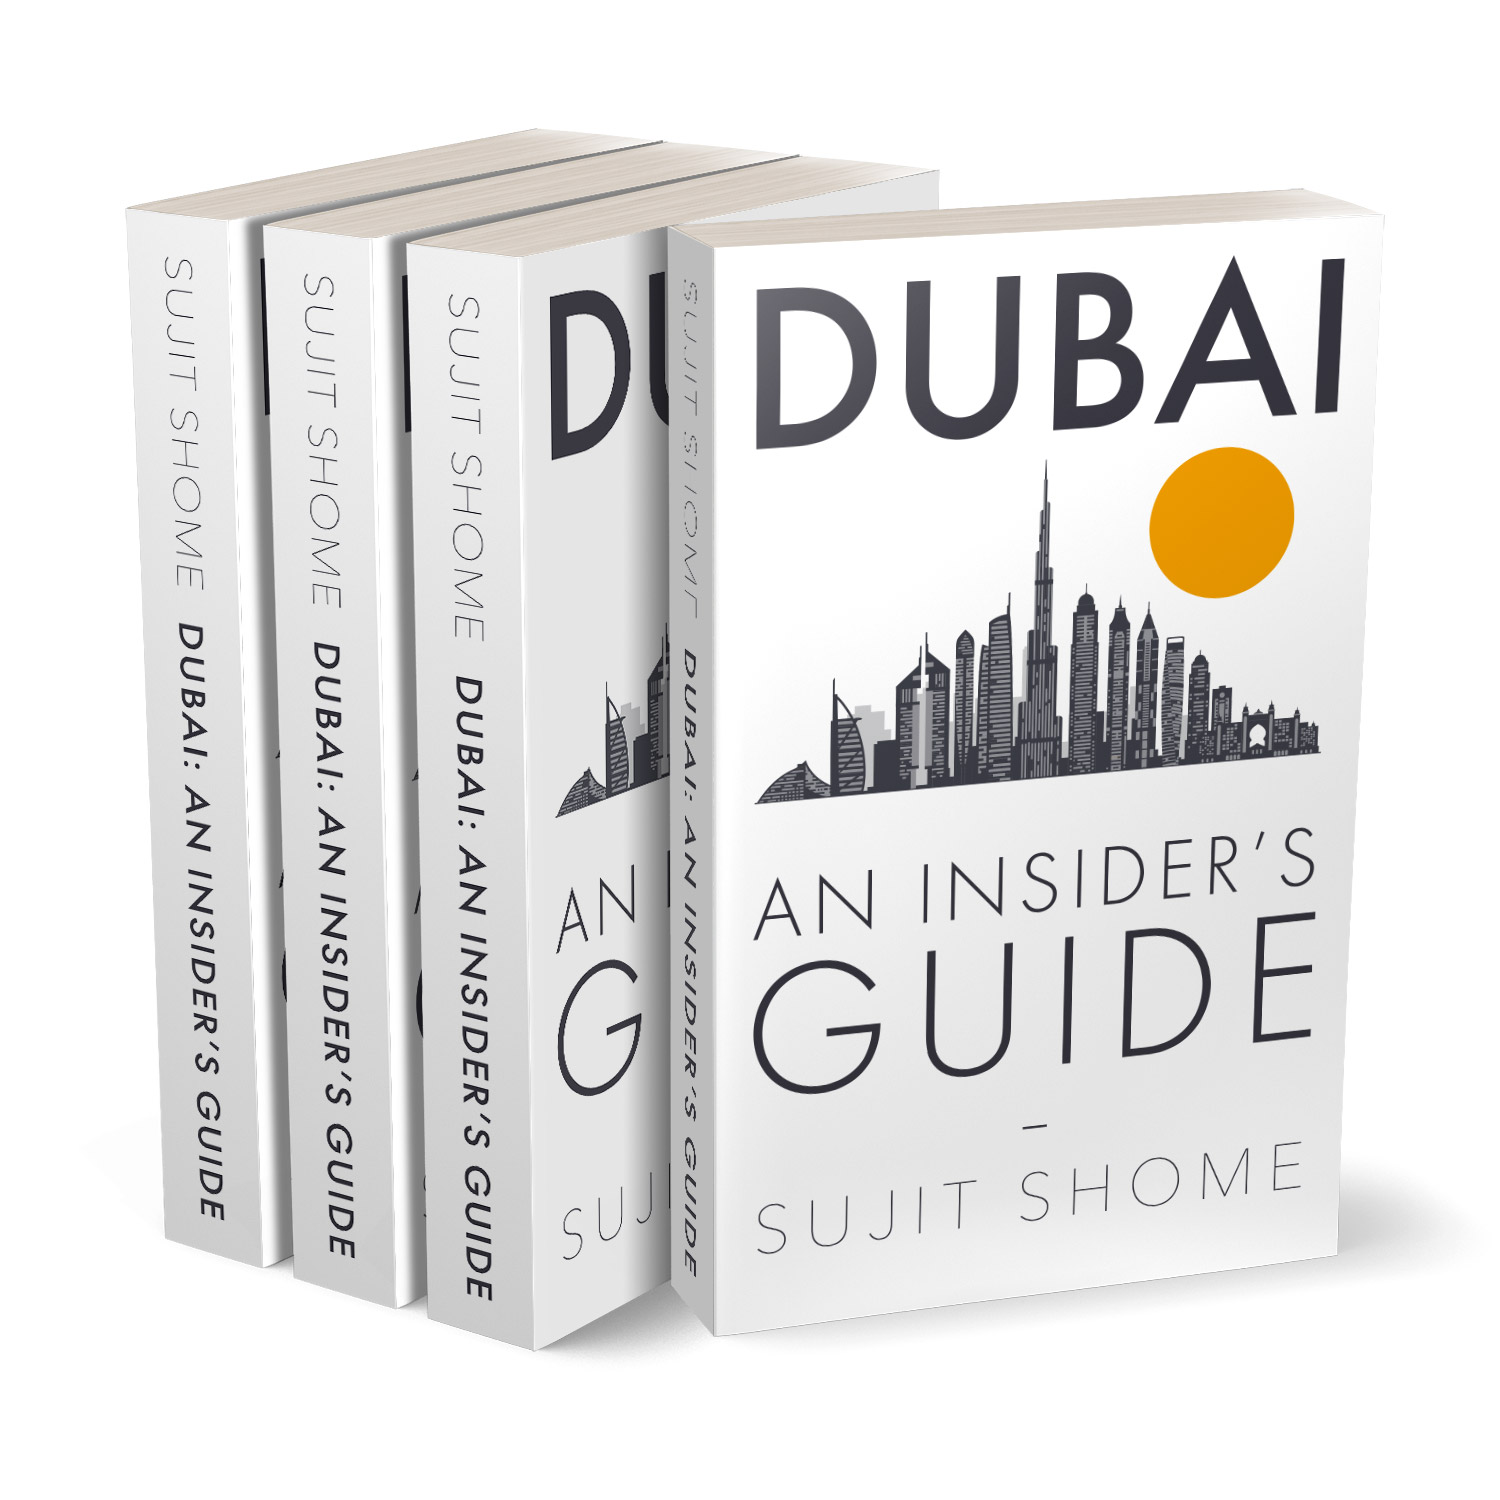 'Dubai: An Insider's Guide' is an informed review to one of the busiest cities in the Middle East. The author is Sujit Shome. The book cover and interior were designed by Mark Thomas, of coverness.com. To find out more about my book design services, please visit www.coverness.com.